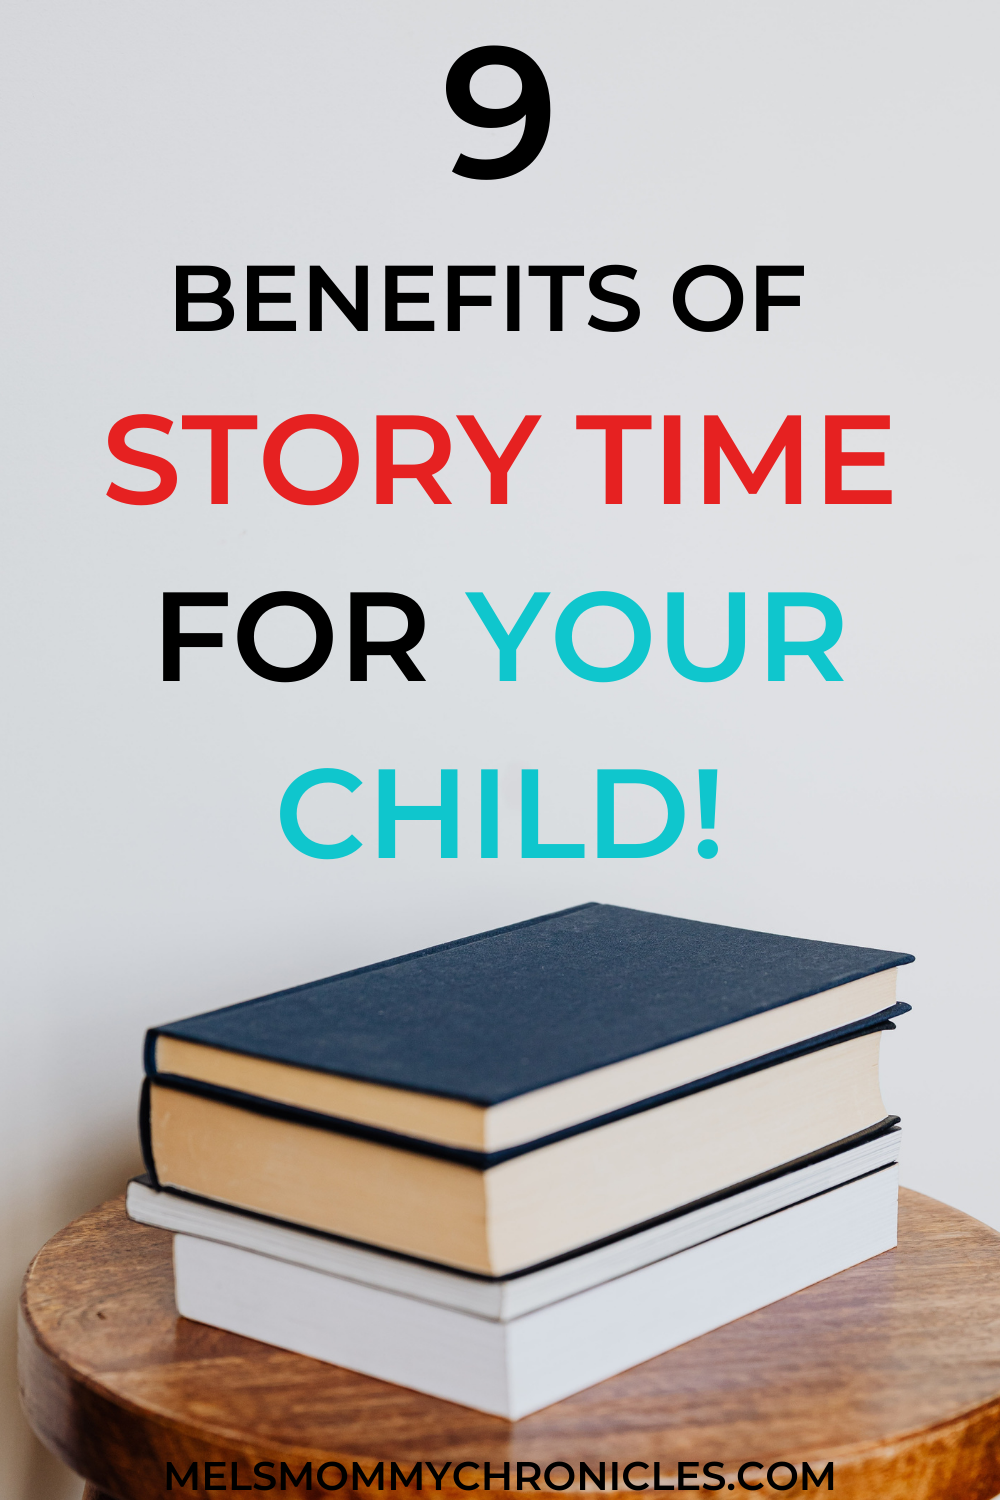 What Are The Benefits Of Story Time For Children?